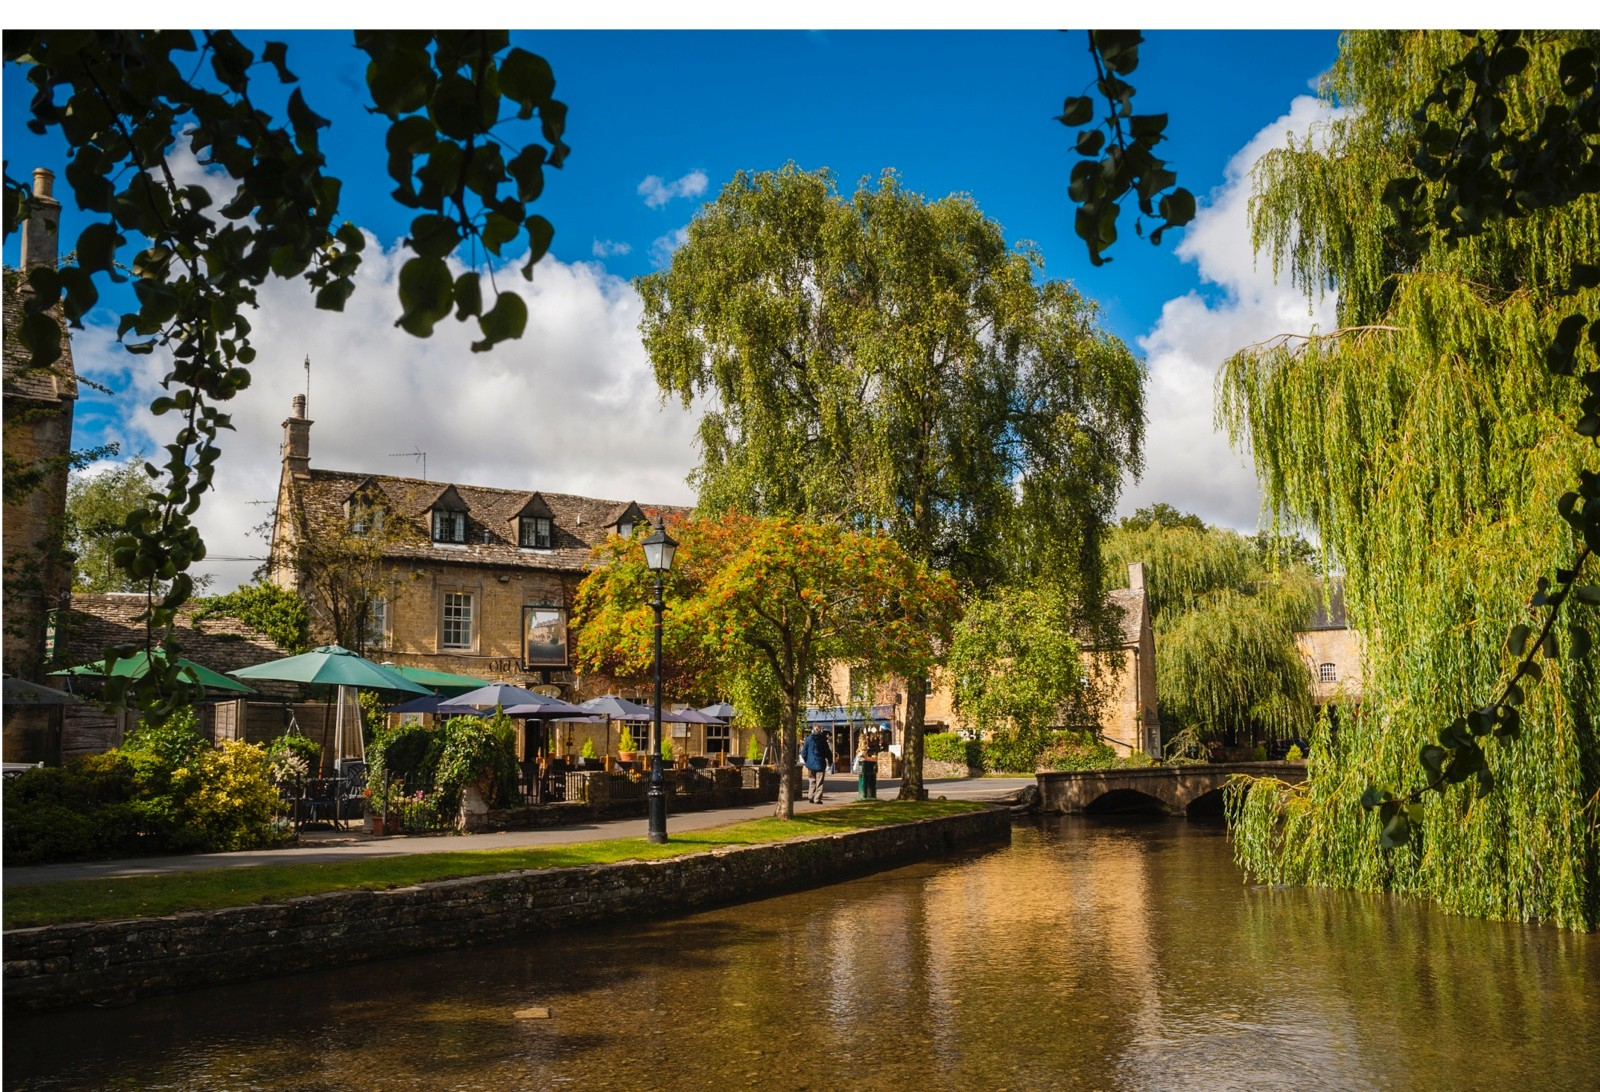 Bourton-on-the-water_0-49a3872